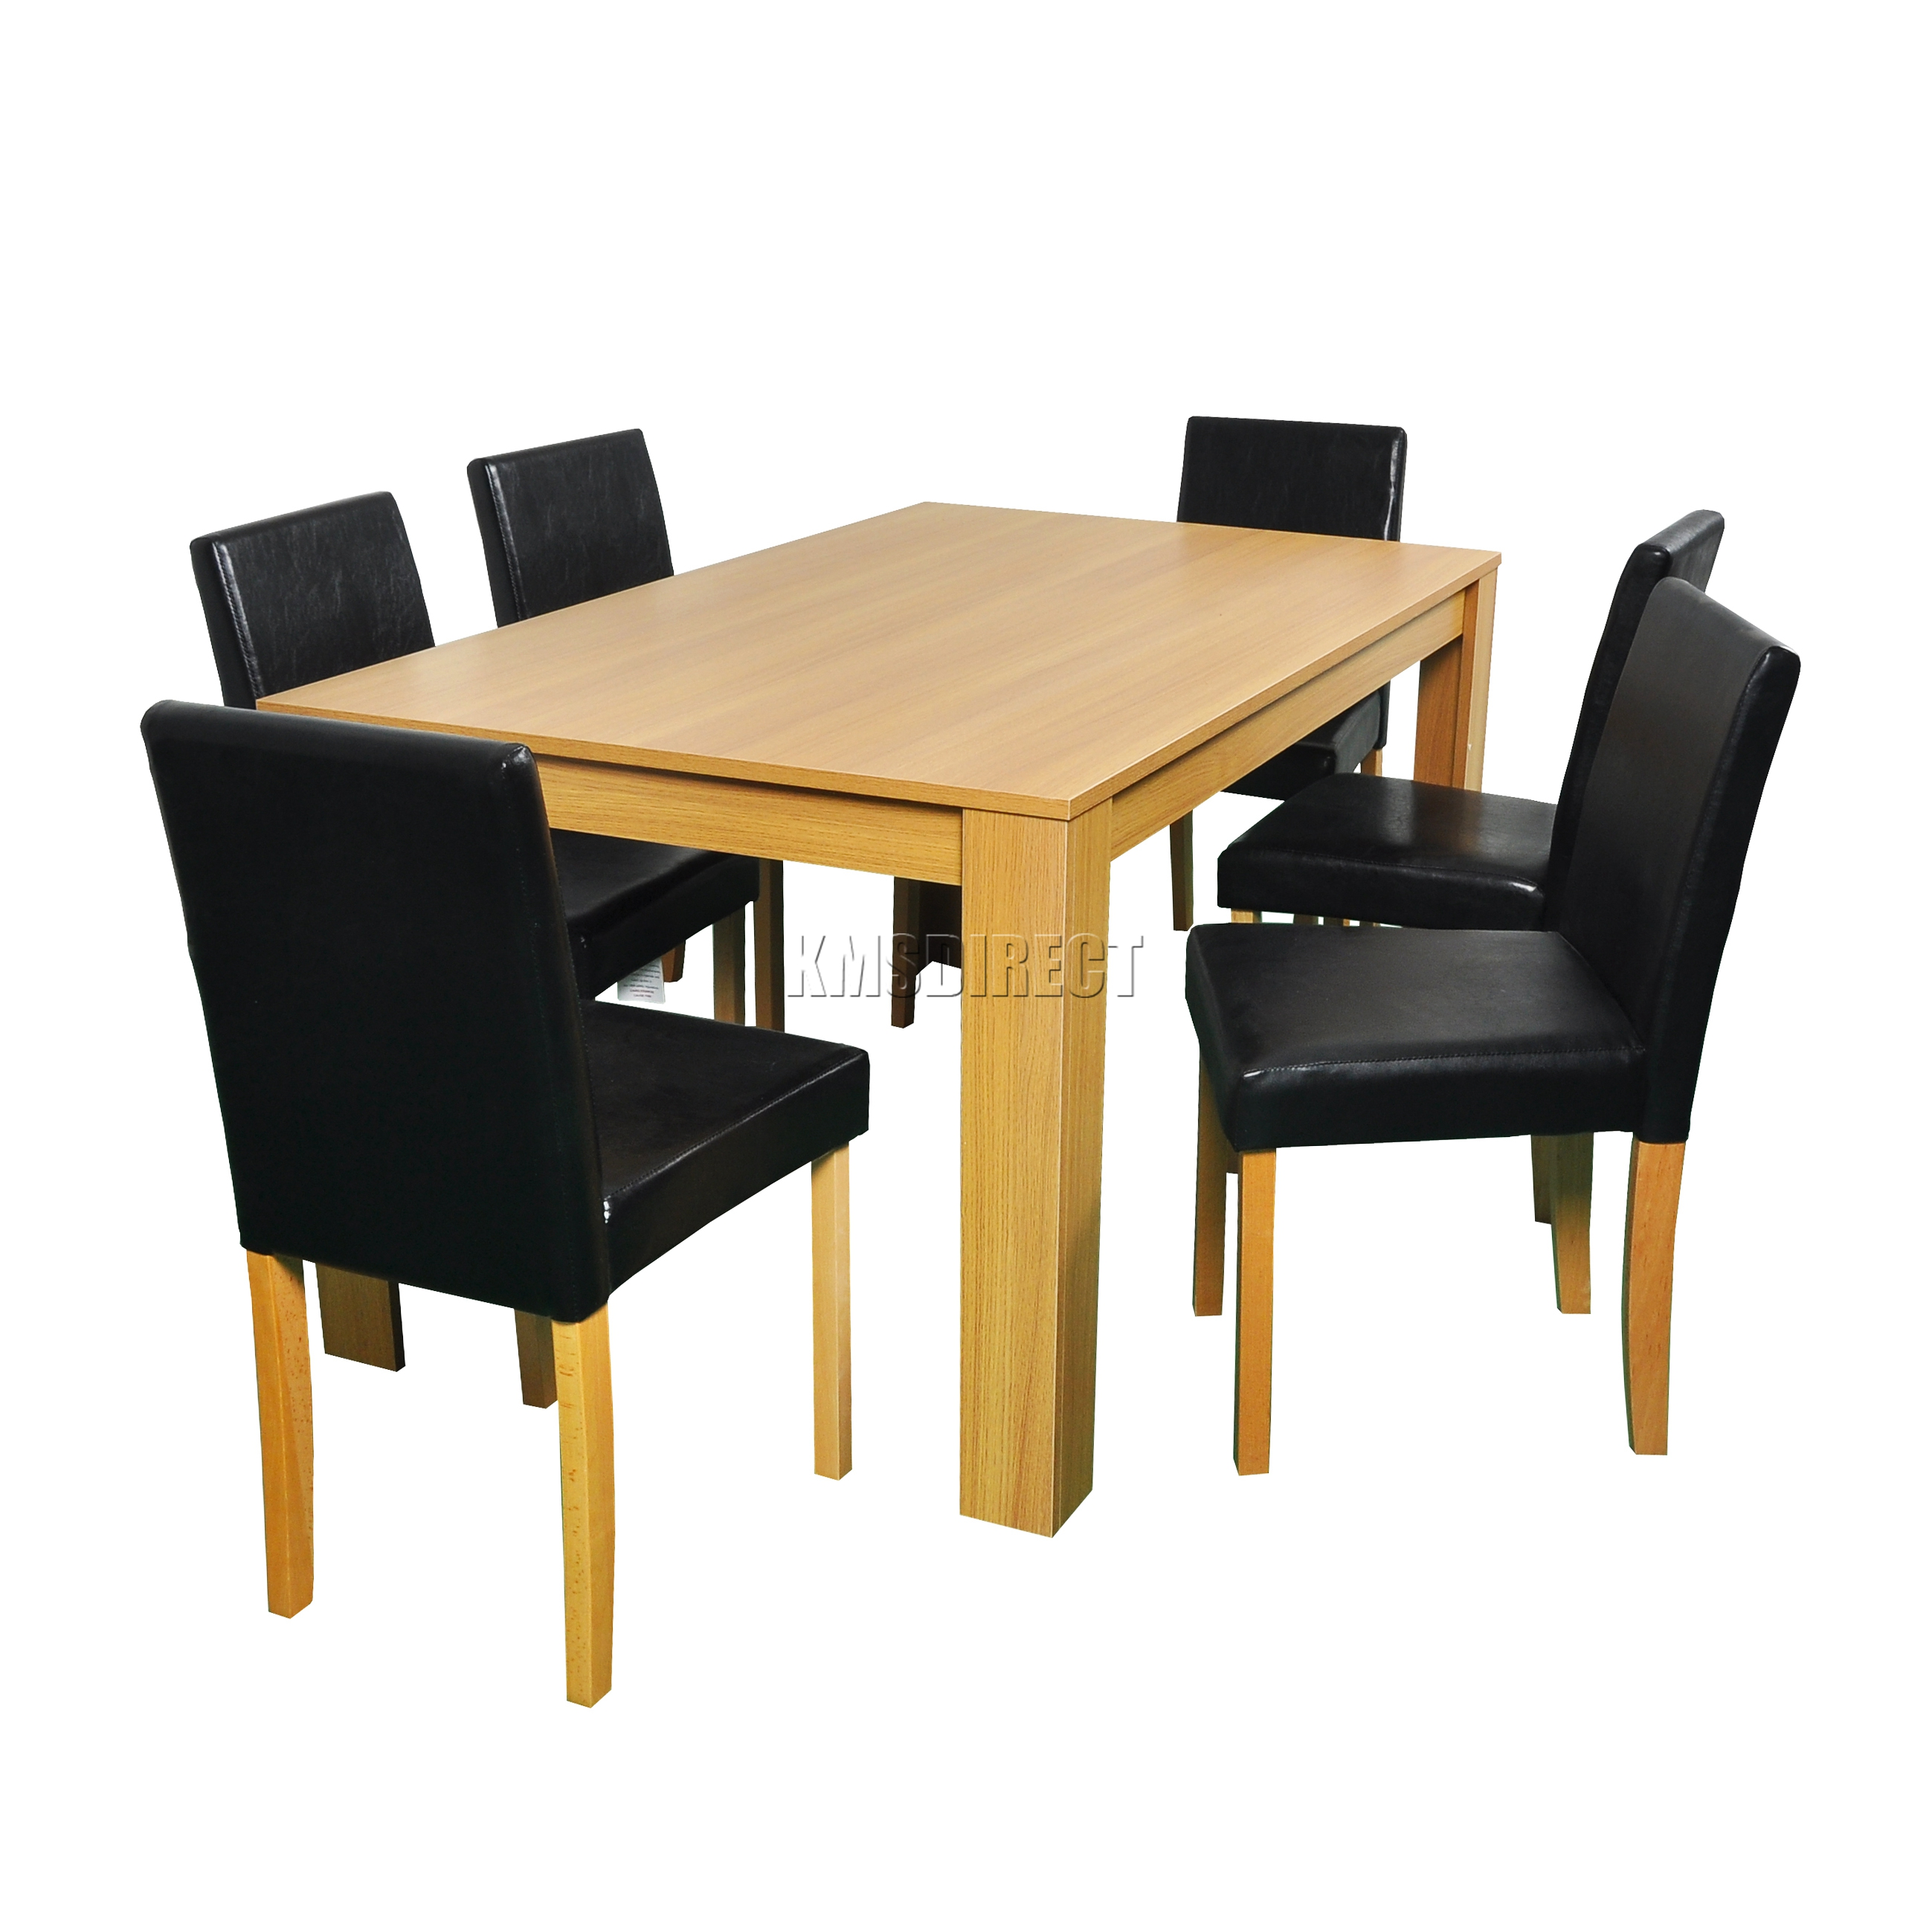 dining table set 6 chairs stretch chair covers for folding westwood wooden and 4 or pu faux leather